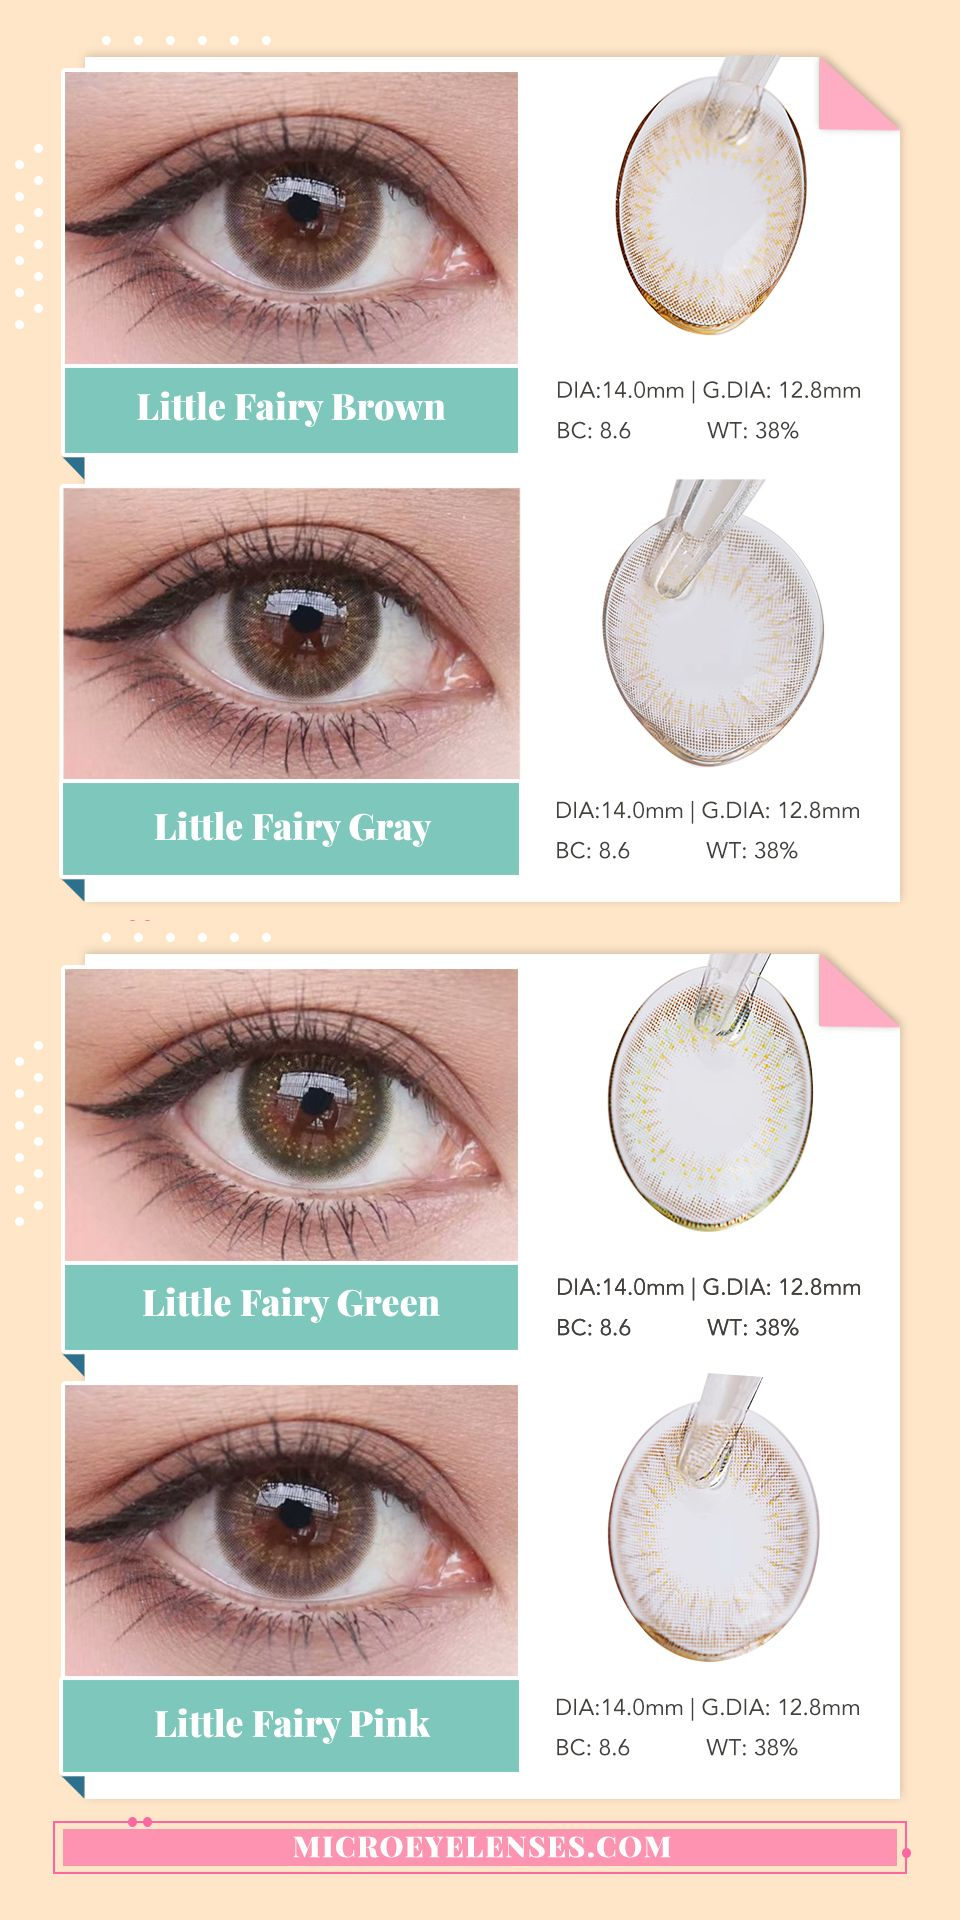 Microeyelenses Com Little Fairy Series Party Colored Contacts Lens Microeyelenses Microeyelensescom Contactlenses Circlecontactlenses Be カラーコンタクト カラー カラコン